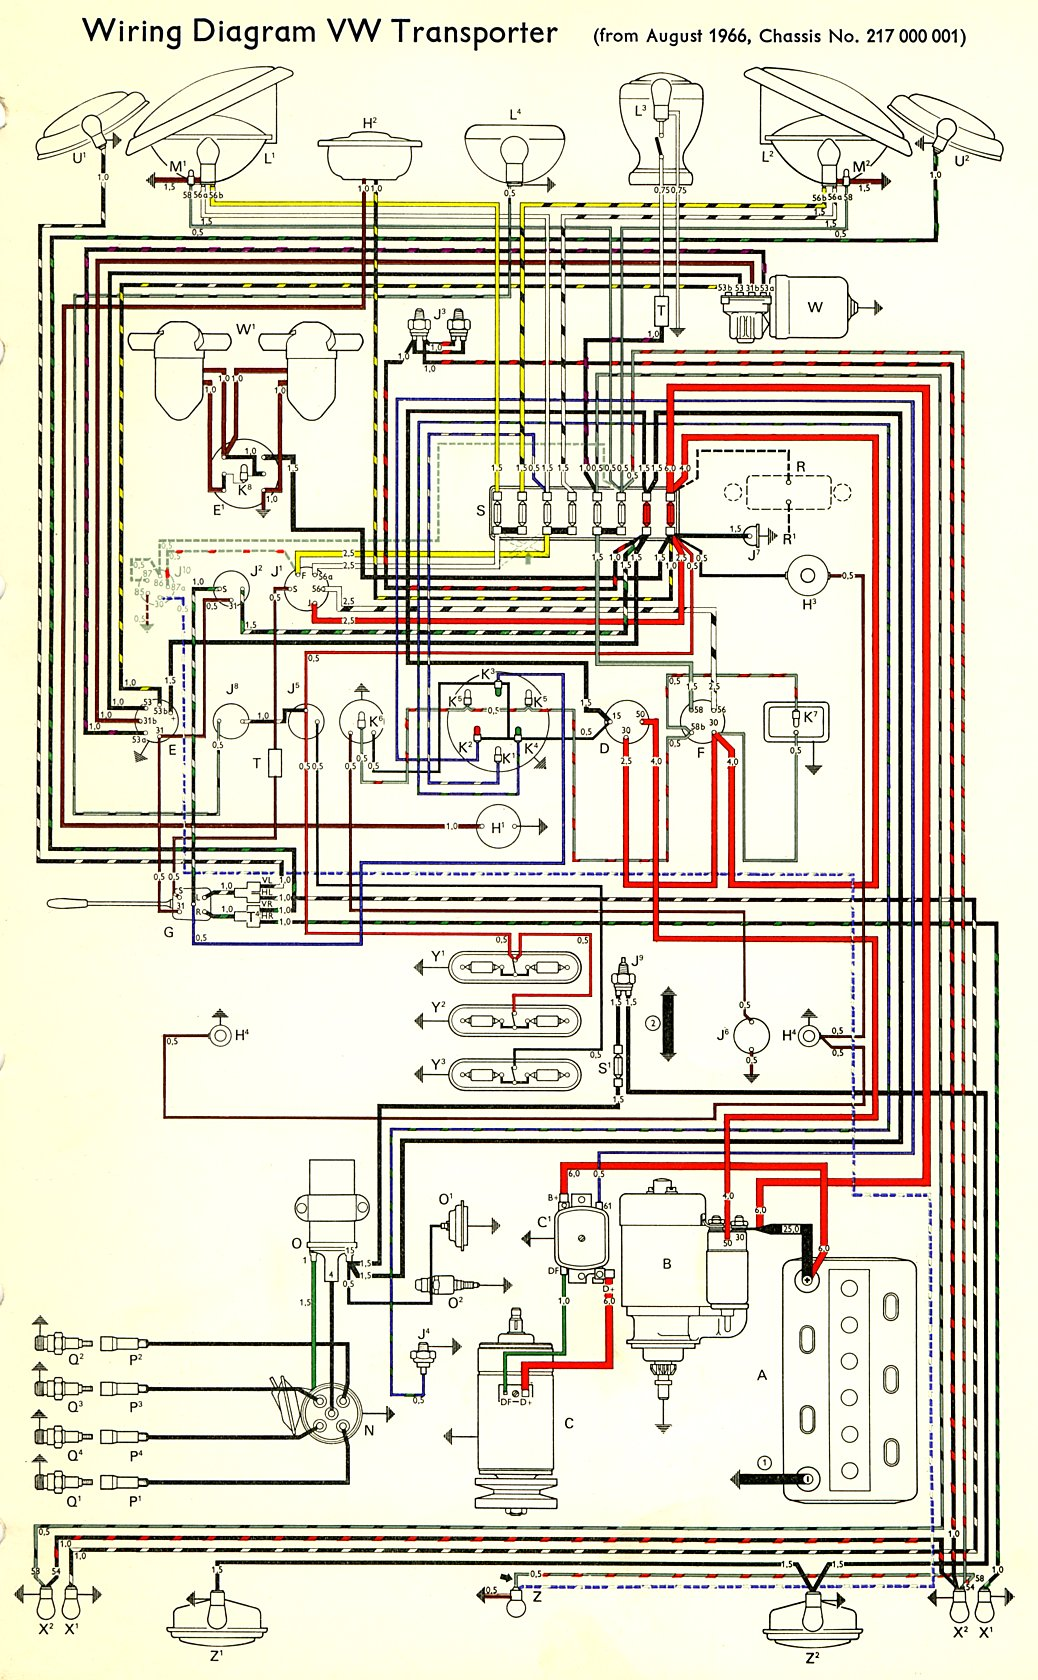 bus wiring diagram school bus schematic wiring diagrams vw bug wiring diagram 1967 bus wiring diagram thegoldenbug com wagon wiring diagrams 1960 flxible bus wiring diagram